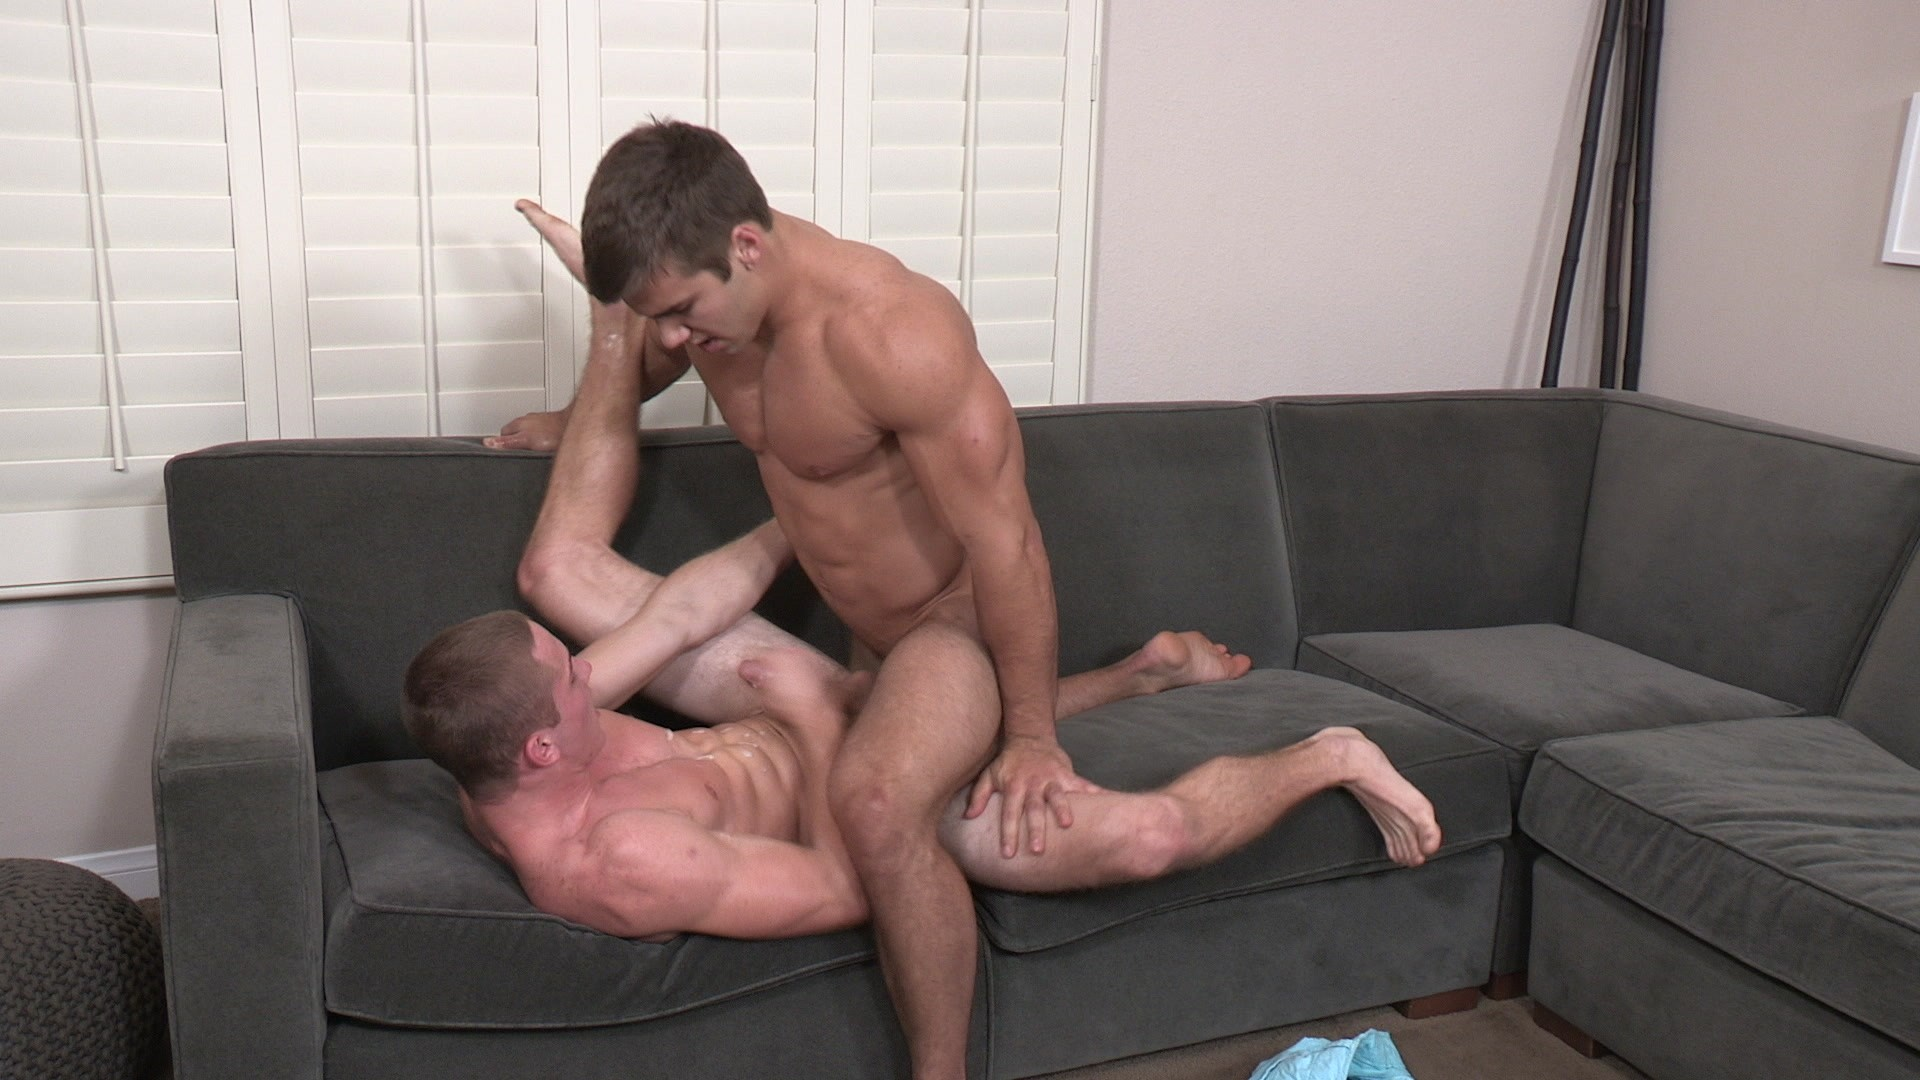 anal winking gay porn ass